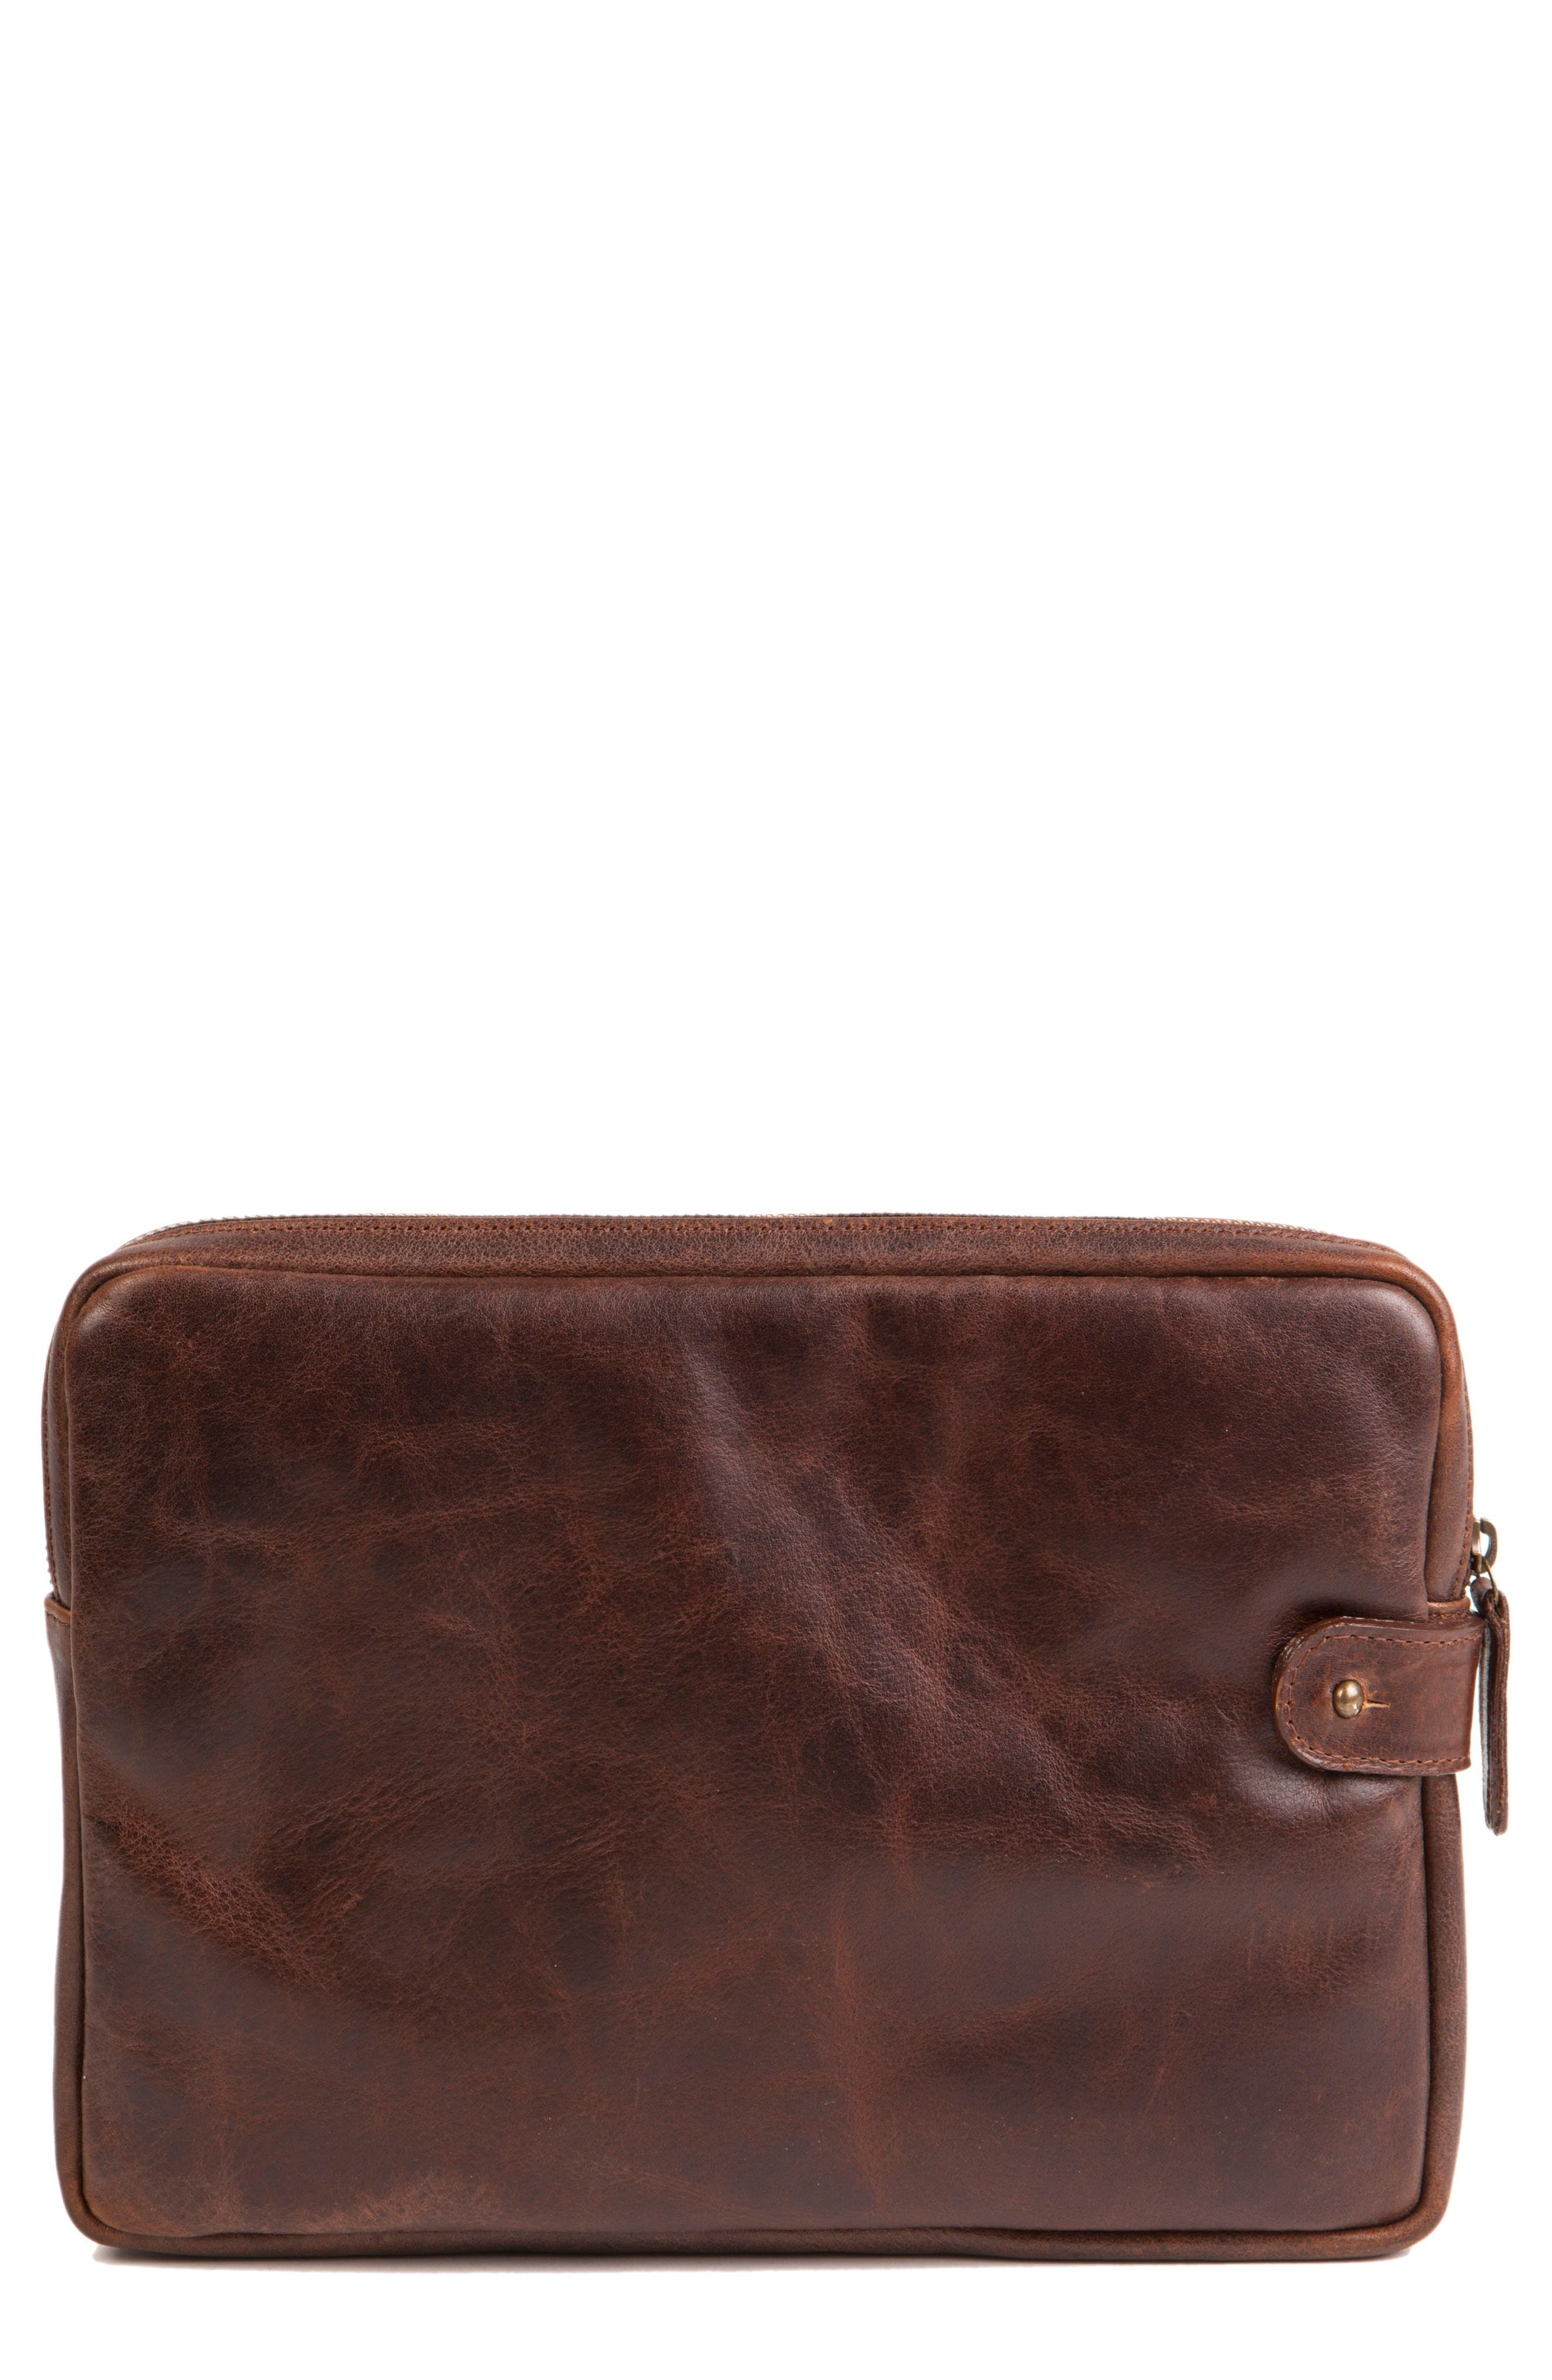 Leather Tablet Sleeve,                             Main thumbnail 1, color,                             Titan Milled Brown